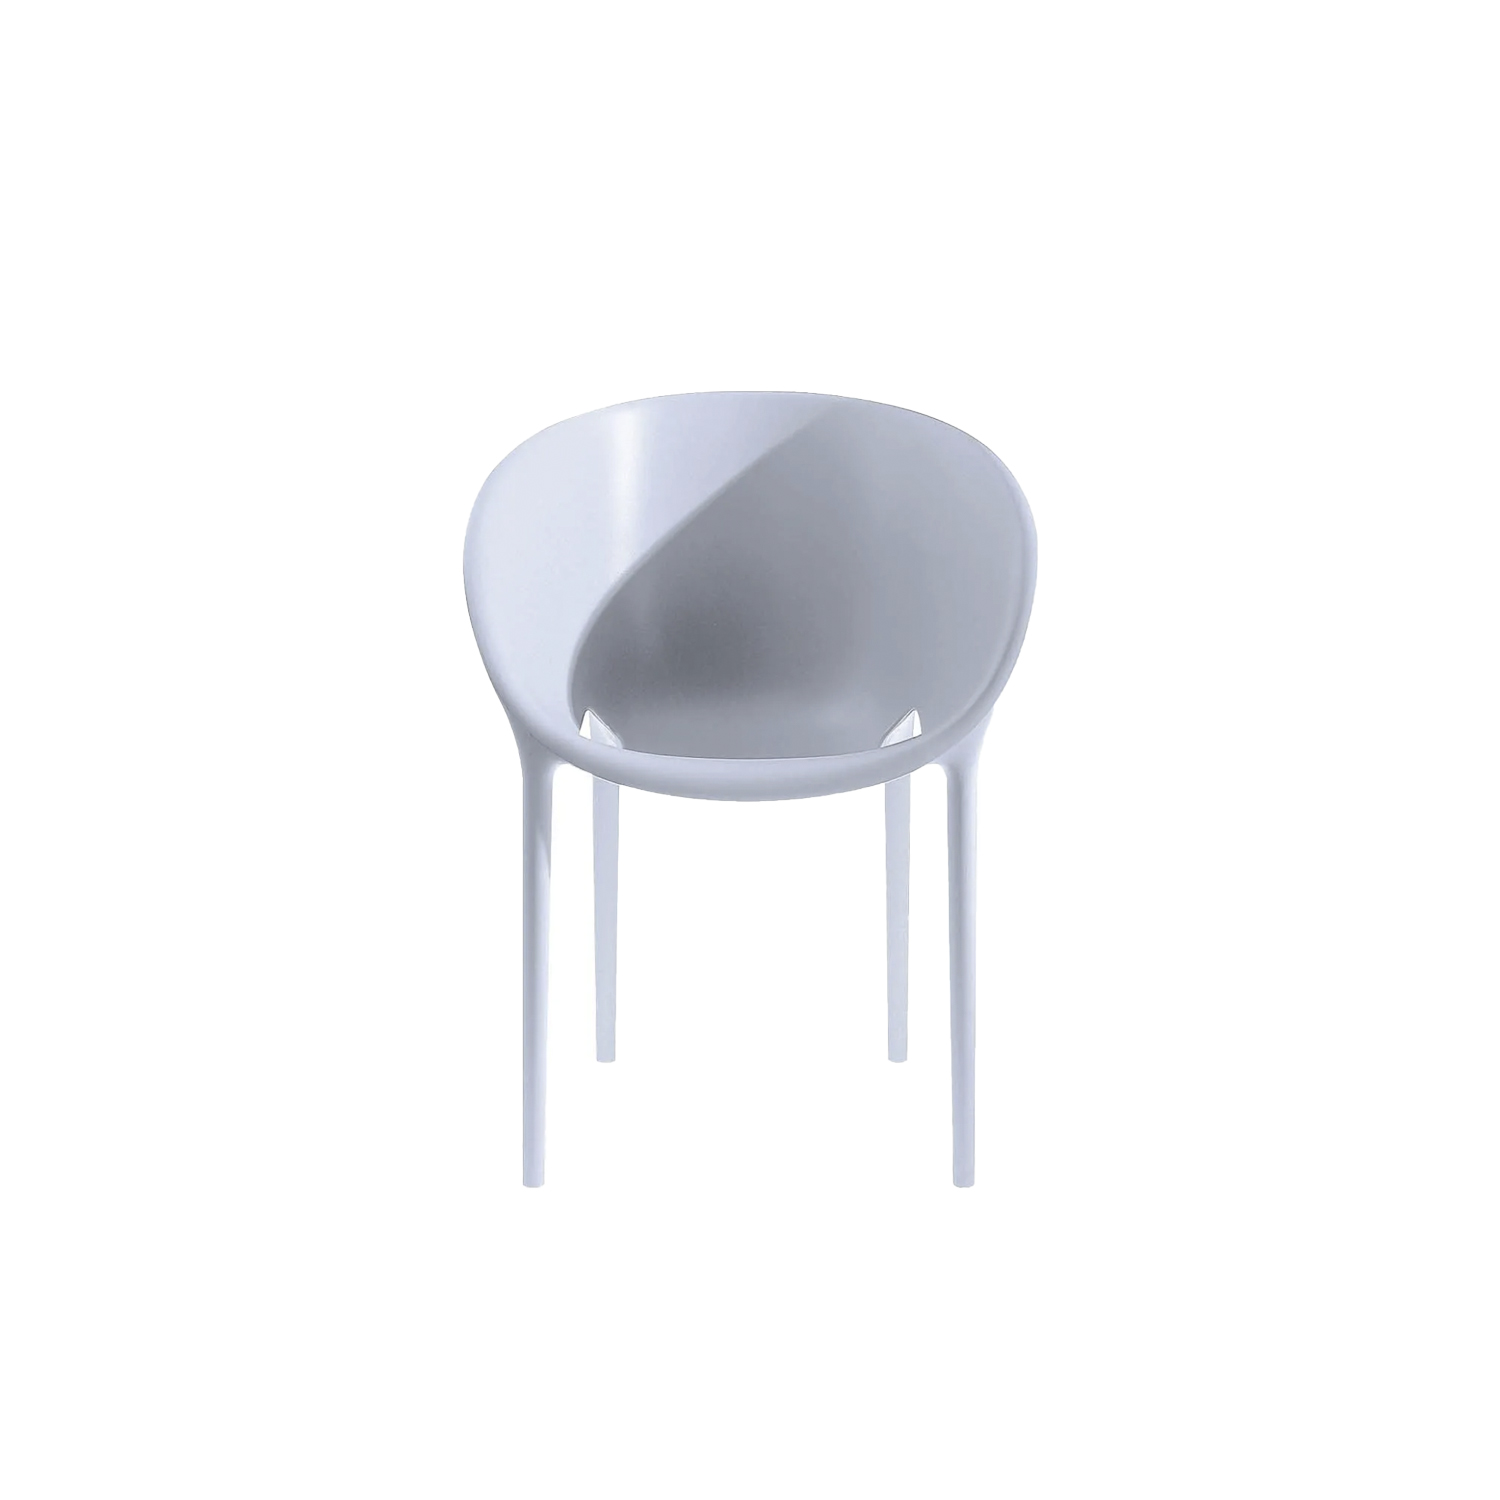 """Soft Egg Chair - A chair that incorporates the rounded 50's style, however, ergonomically correct and more suitable for an outdoor use. This is accomplished through the side slots, so fundamental to the flow of rainwater and to its stackability. """"Soft Egg"""" offers an organic image that can melt, so amazingly, with the organic unity of nature. 